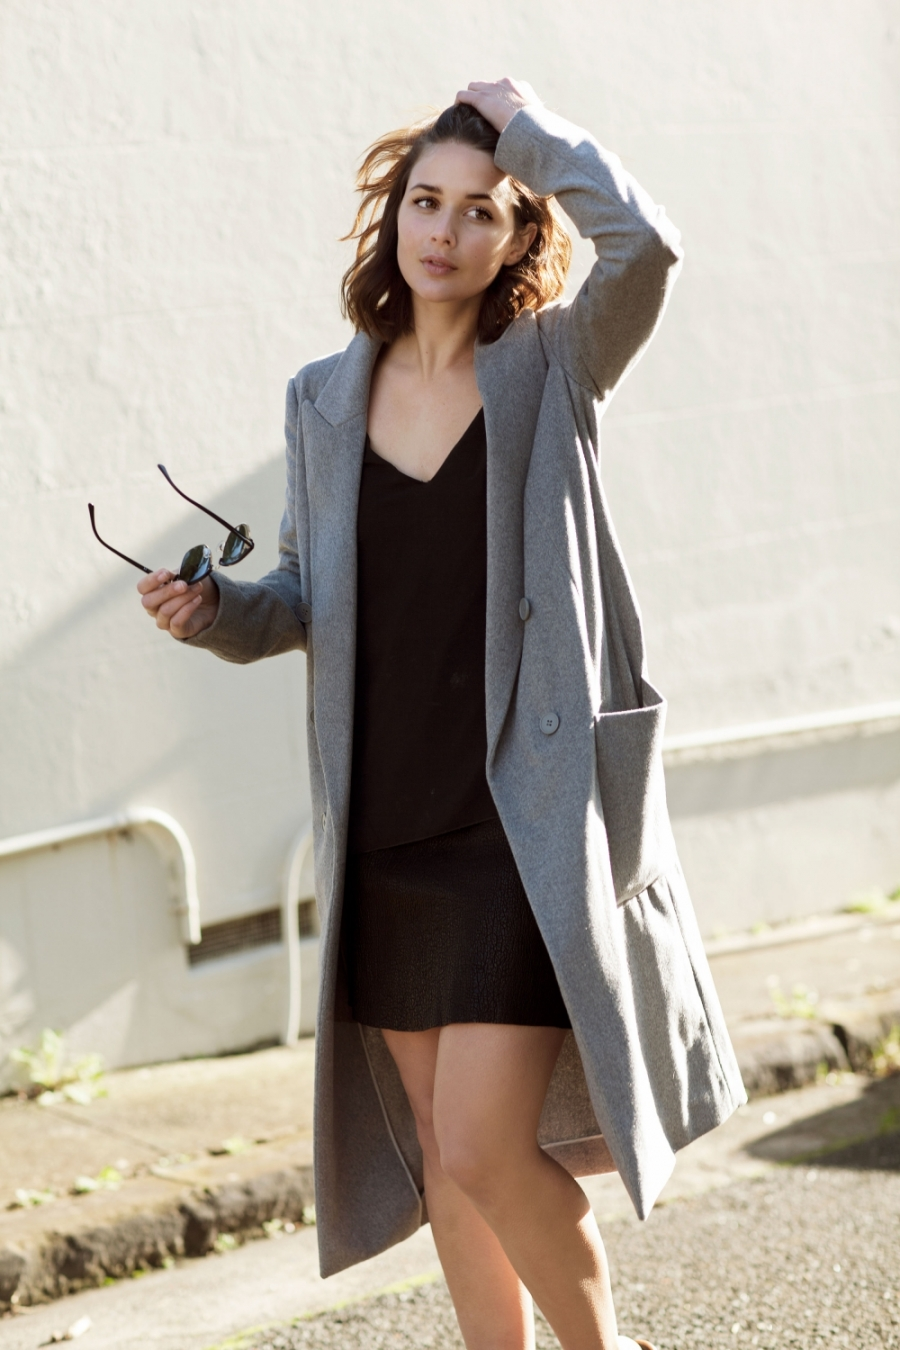 Putting together a great spring outfit can be very easy as shown here by Sara Donaldson. Grey three quarter length coat and a simple deep black V-neck top and skirt. Coat: Country Road, Top: Zara, Skirt: Jerri Jones